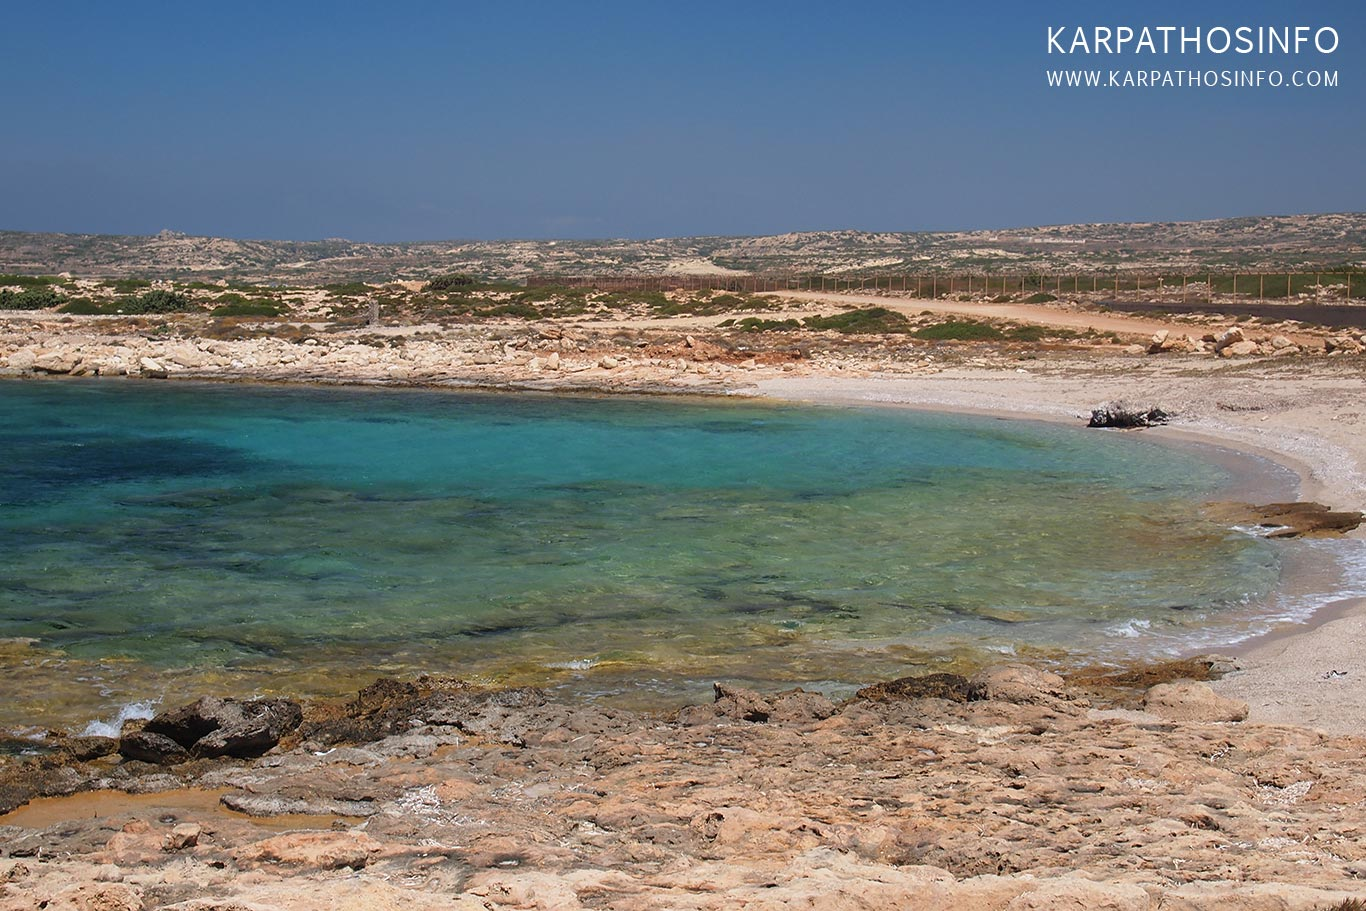 Karpathos airport beaches